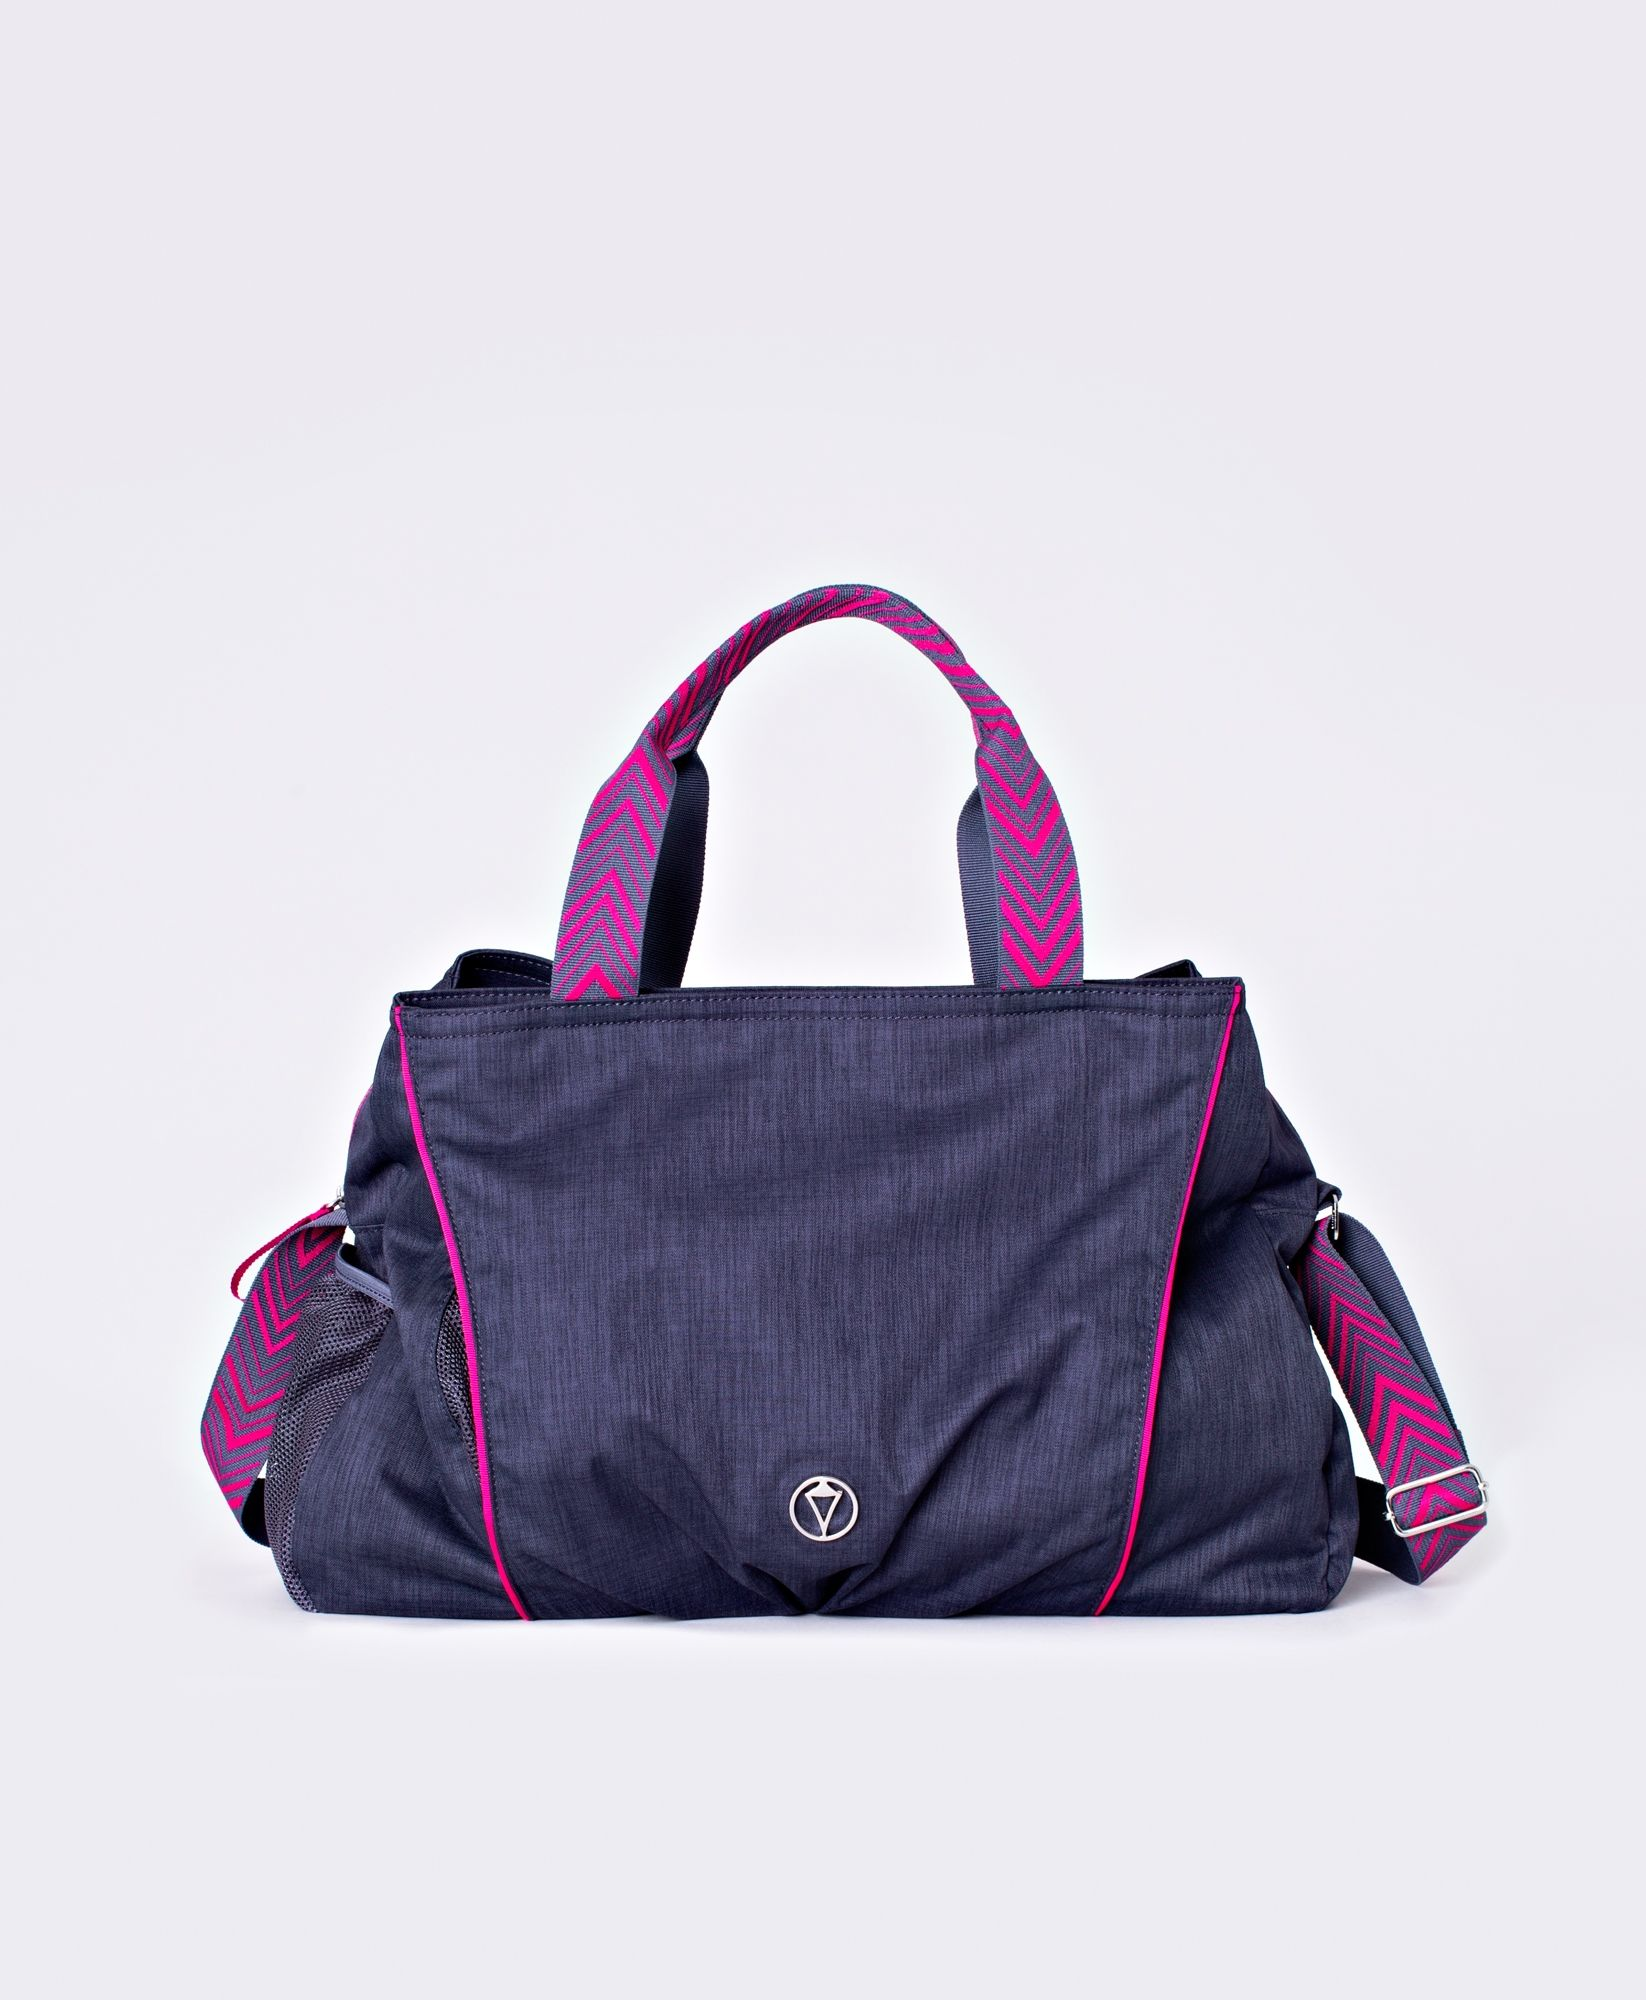 I know this is for kids but I think it would work well for my gym bag too    ) 3c20f61fa3826